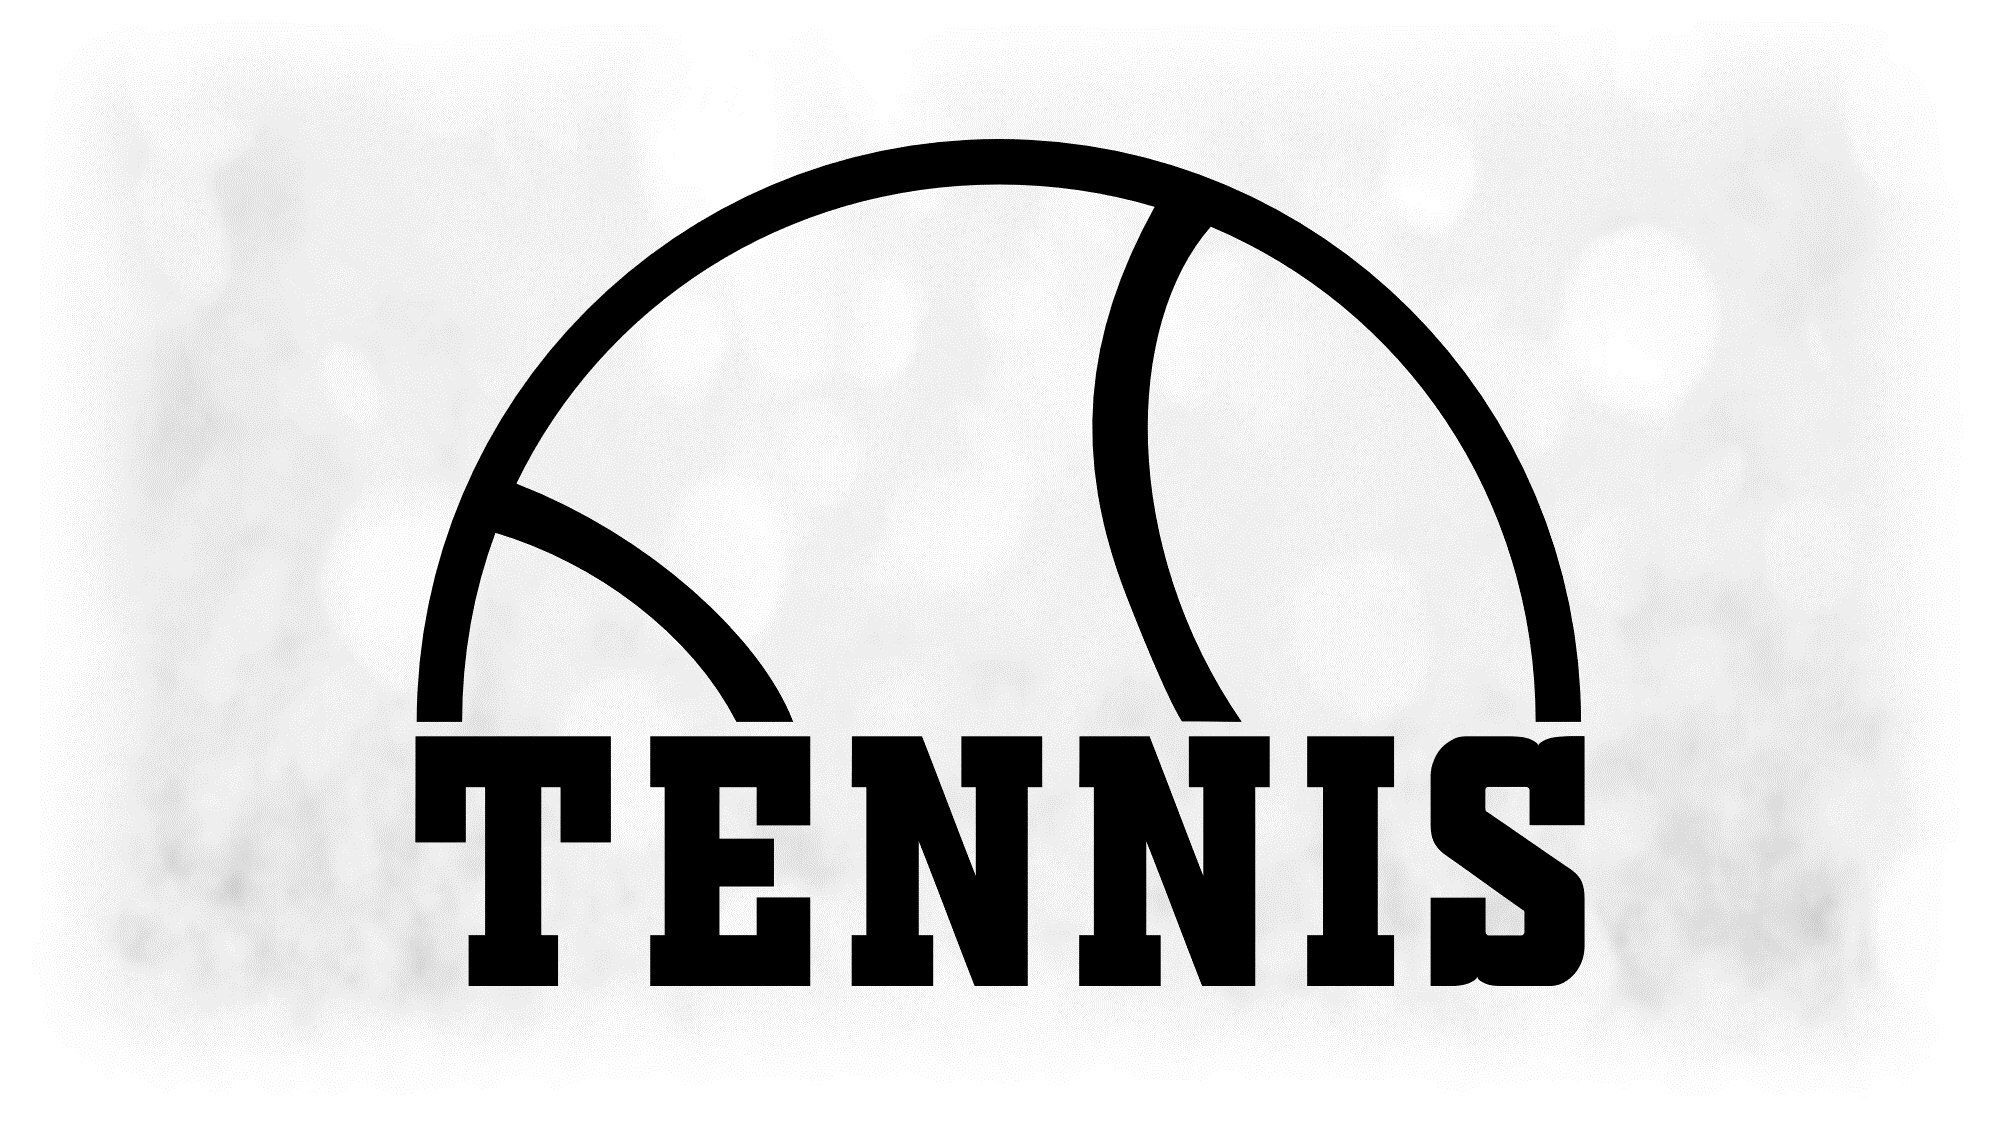 Sports Clipart Large Black And White Half Tennis Ball With Big Bold Word Tennis Under Make Any Color Digital Download Jpg Png Svg In 2020 Bold Words Words Tennis Ball